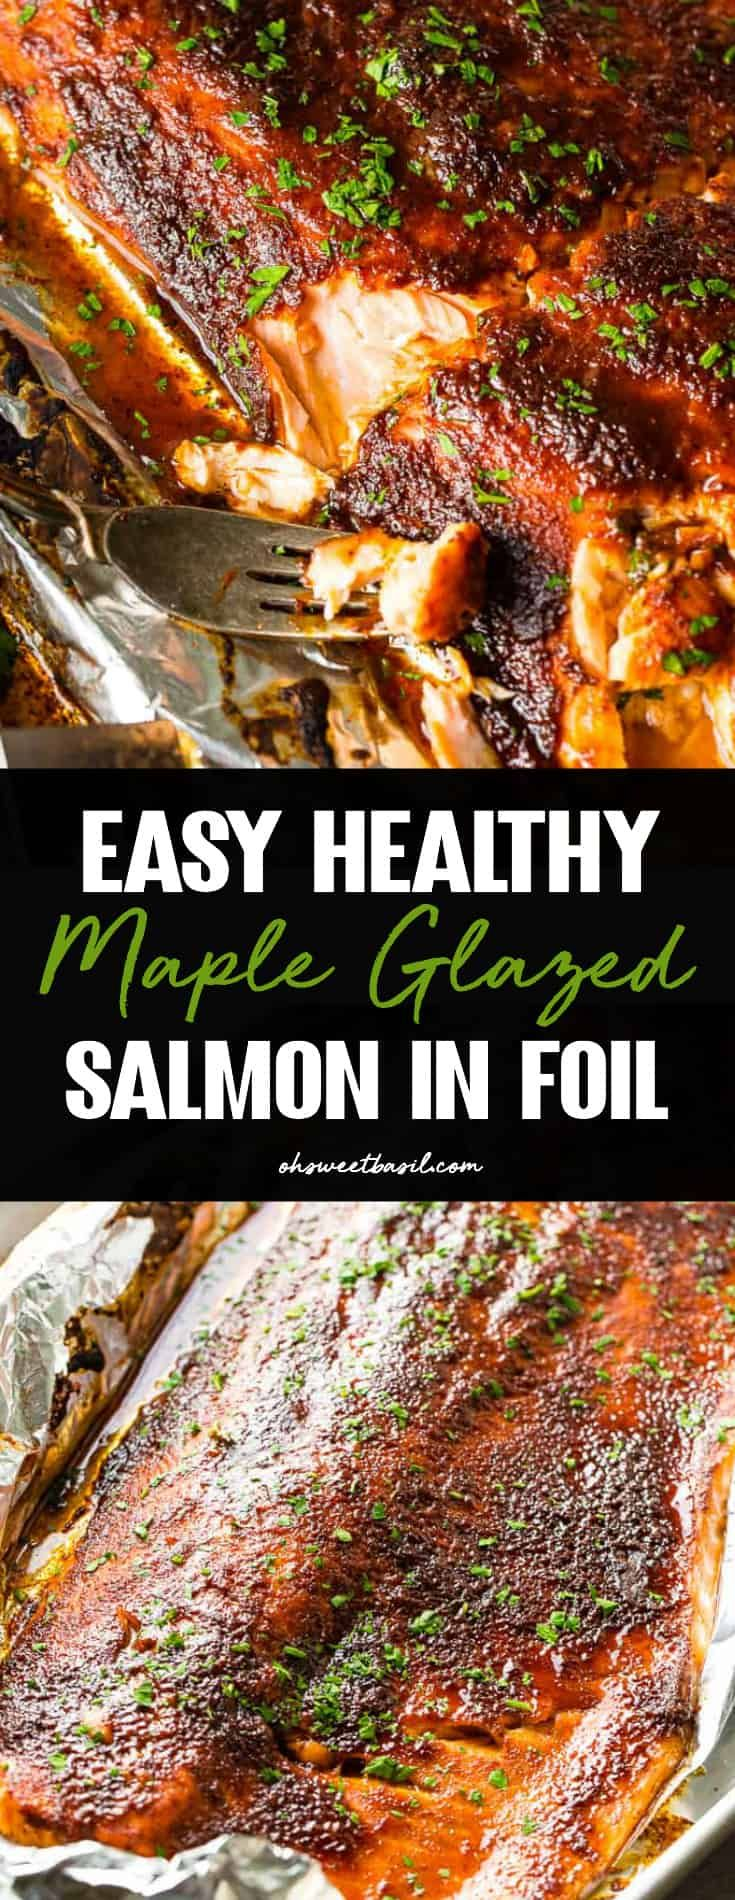 Easy Healthy Maple Glazed Salmon in Foil - Oh Sweet Basil